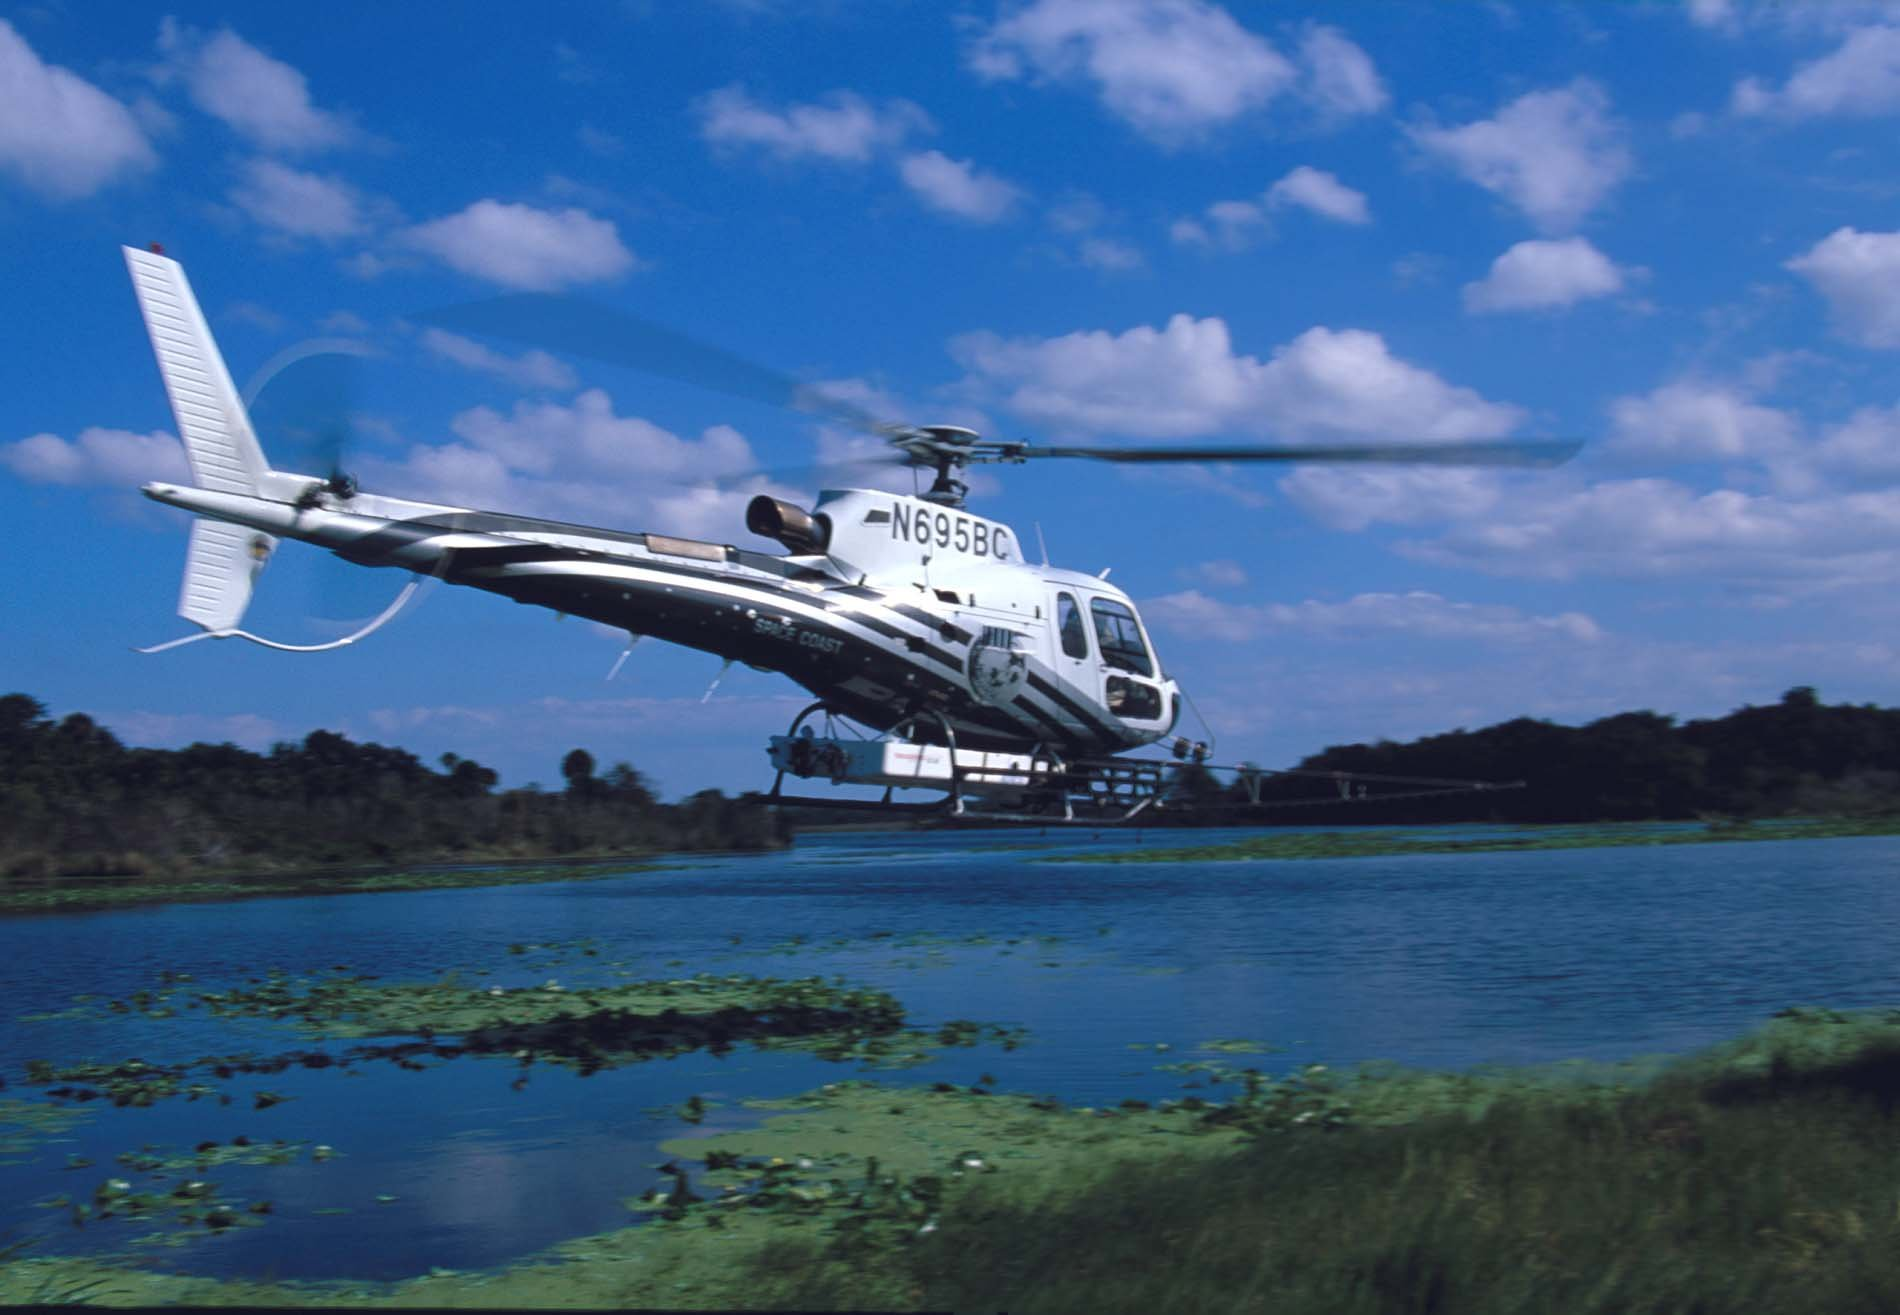 brevard-county-mosquito-control-astar-helicopter-over-marsh